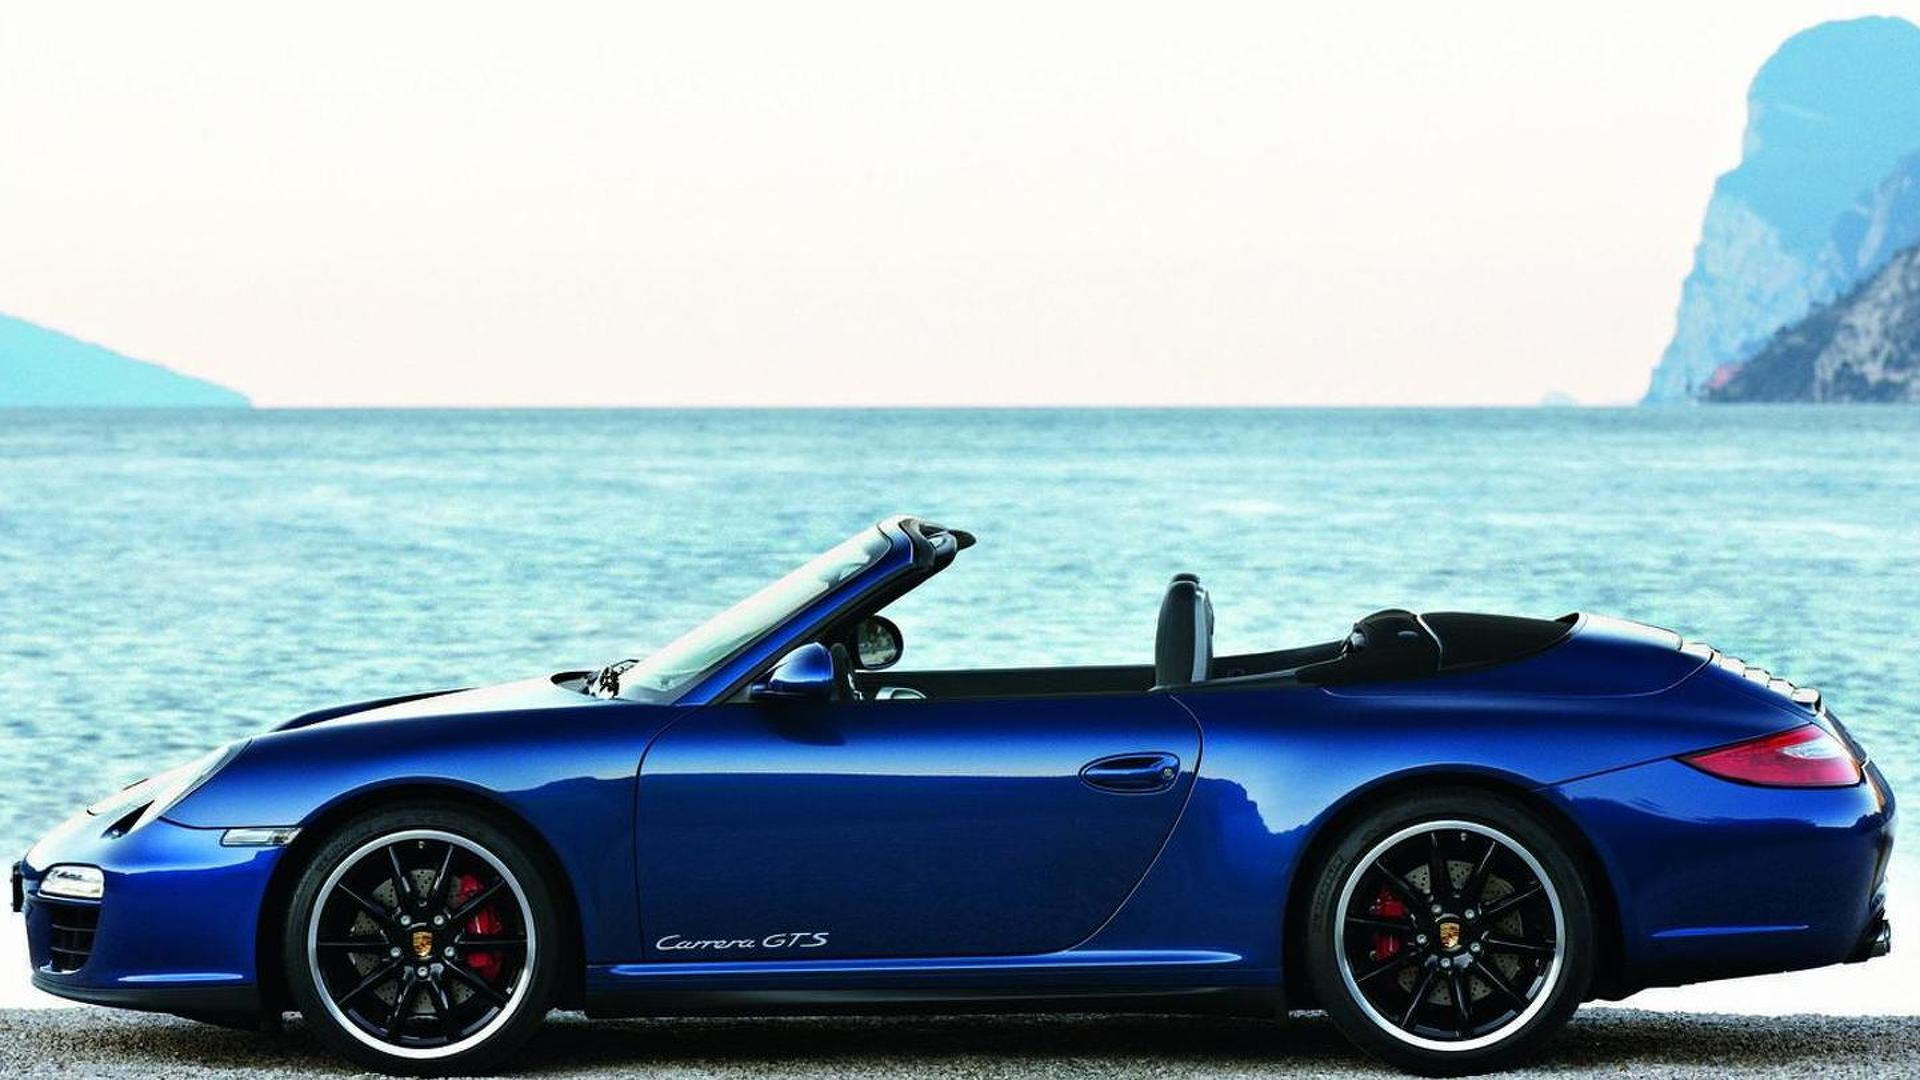 2011 Porsche 911 Carrera GTS wide body revealed [video]